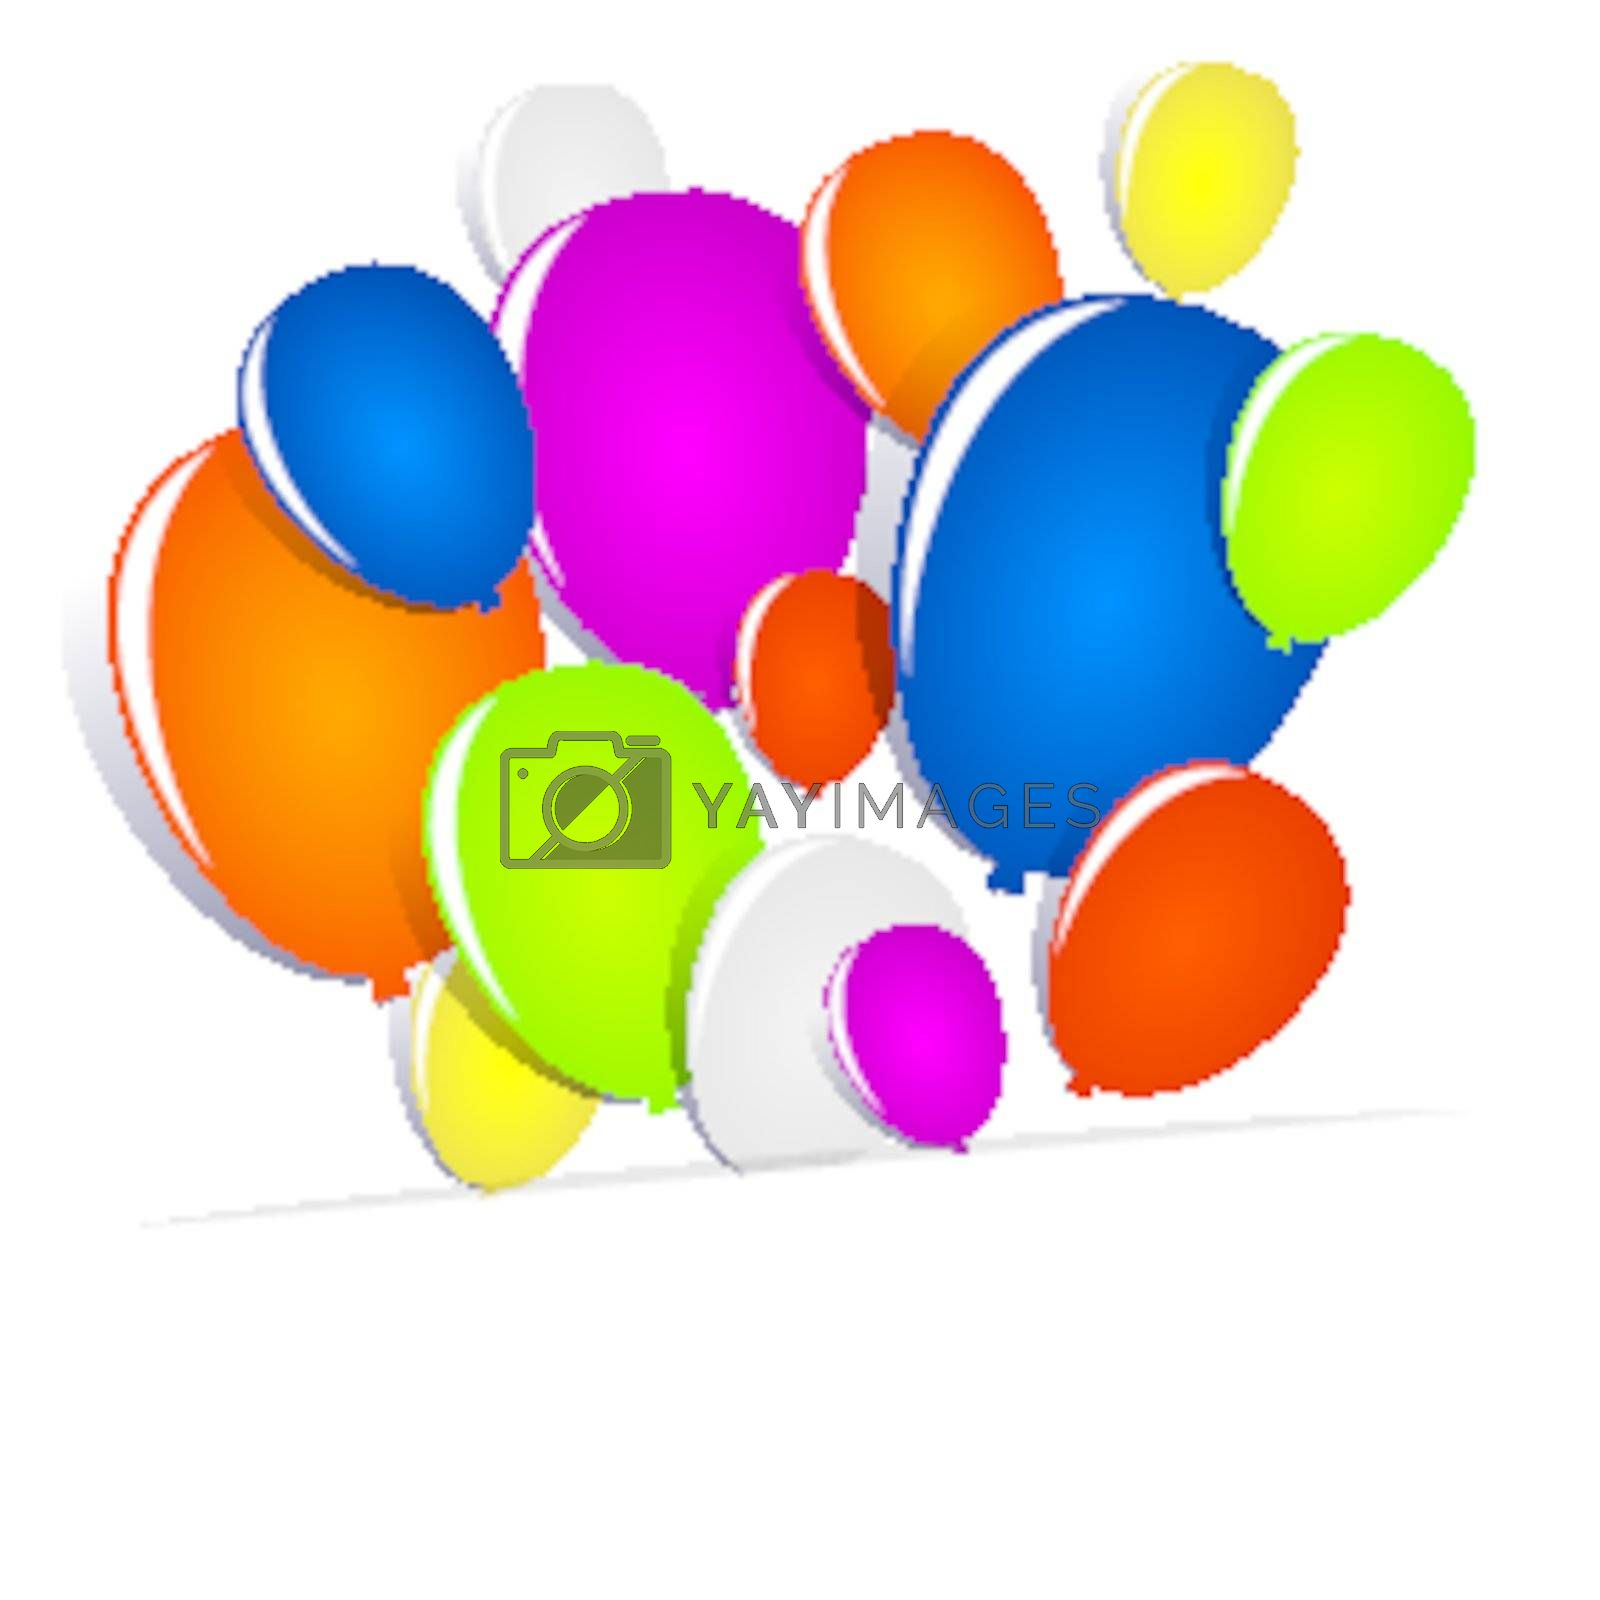 Royalty free image of Multicolored Balloons by nicousnake